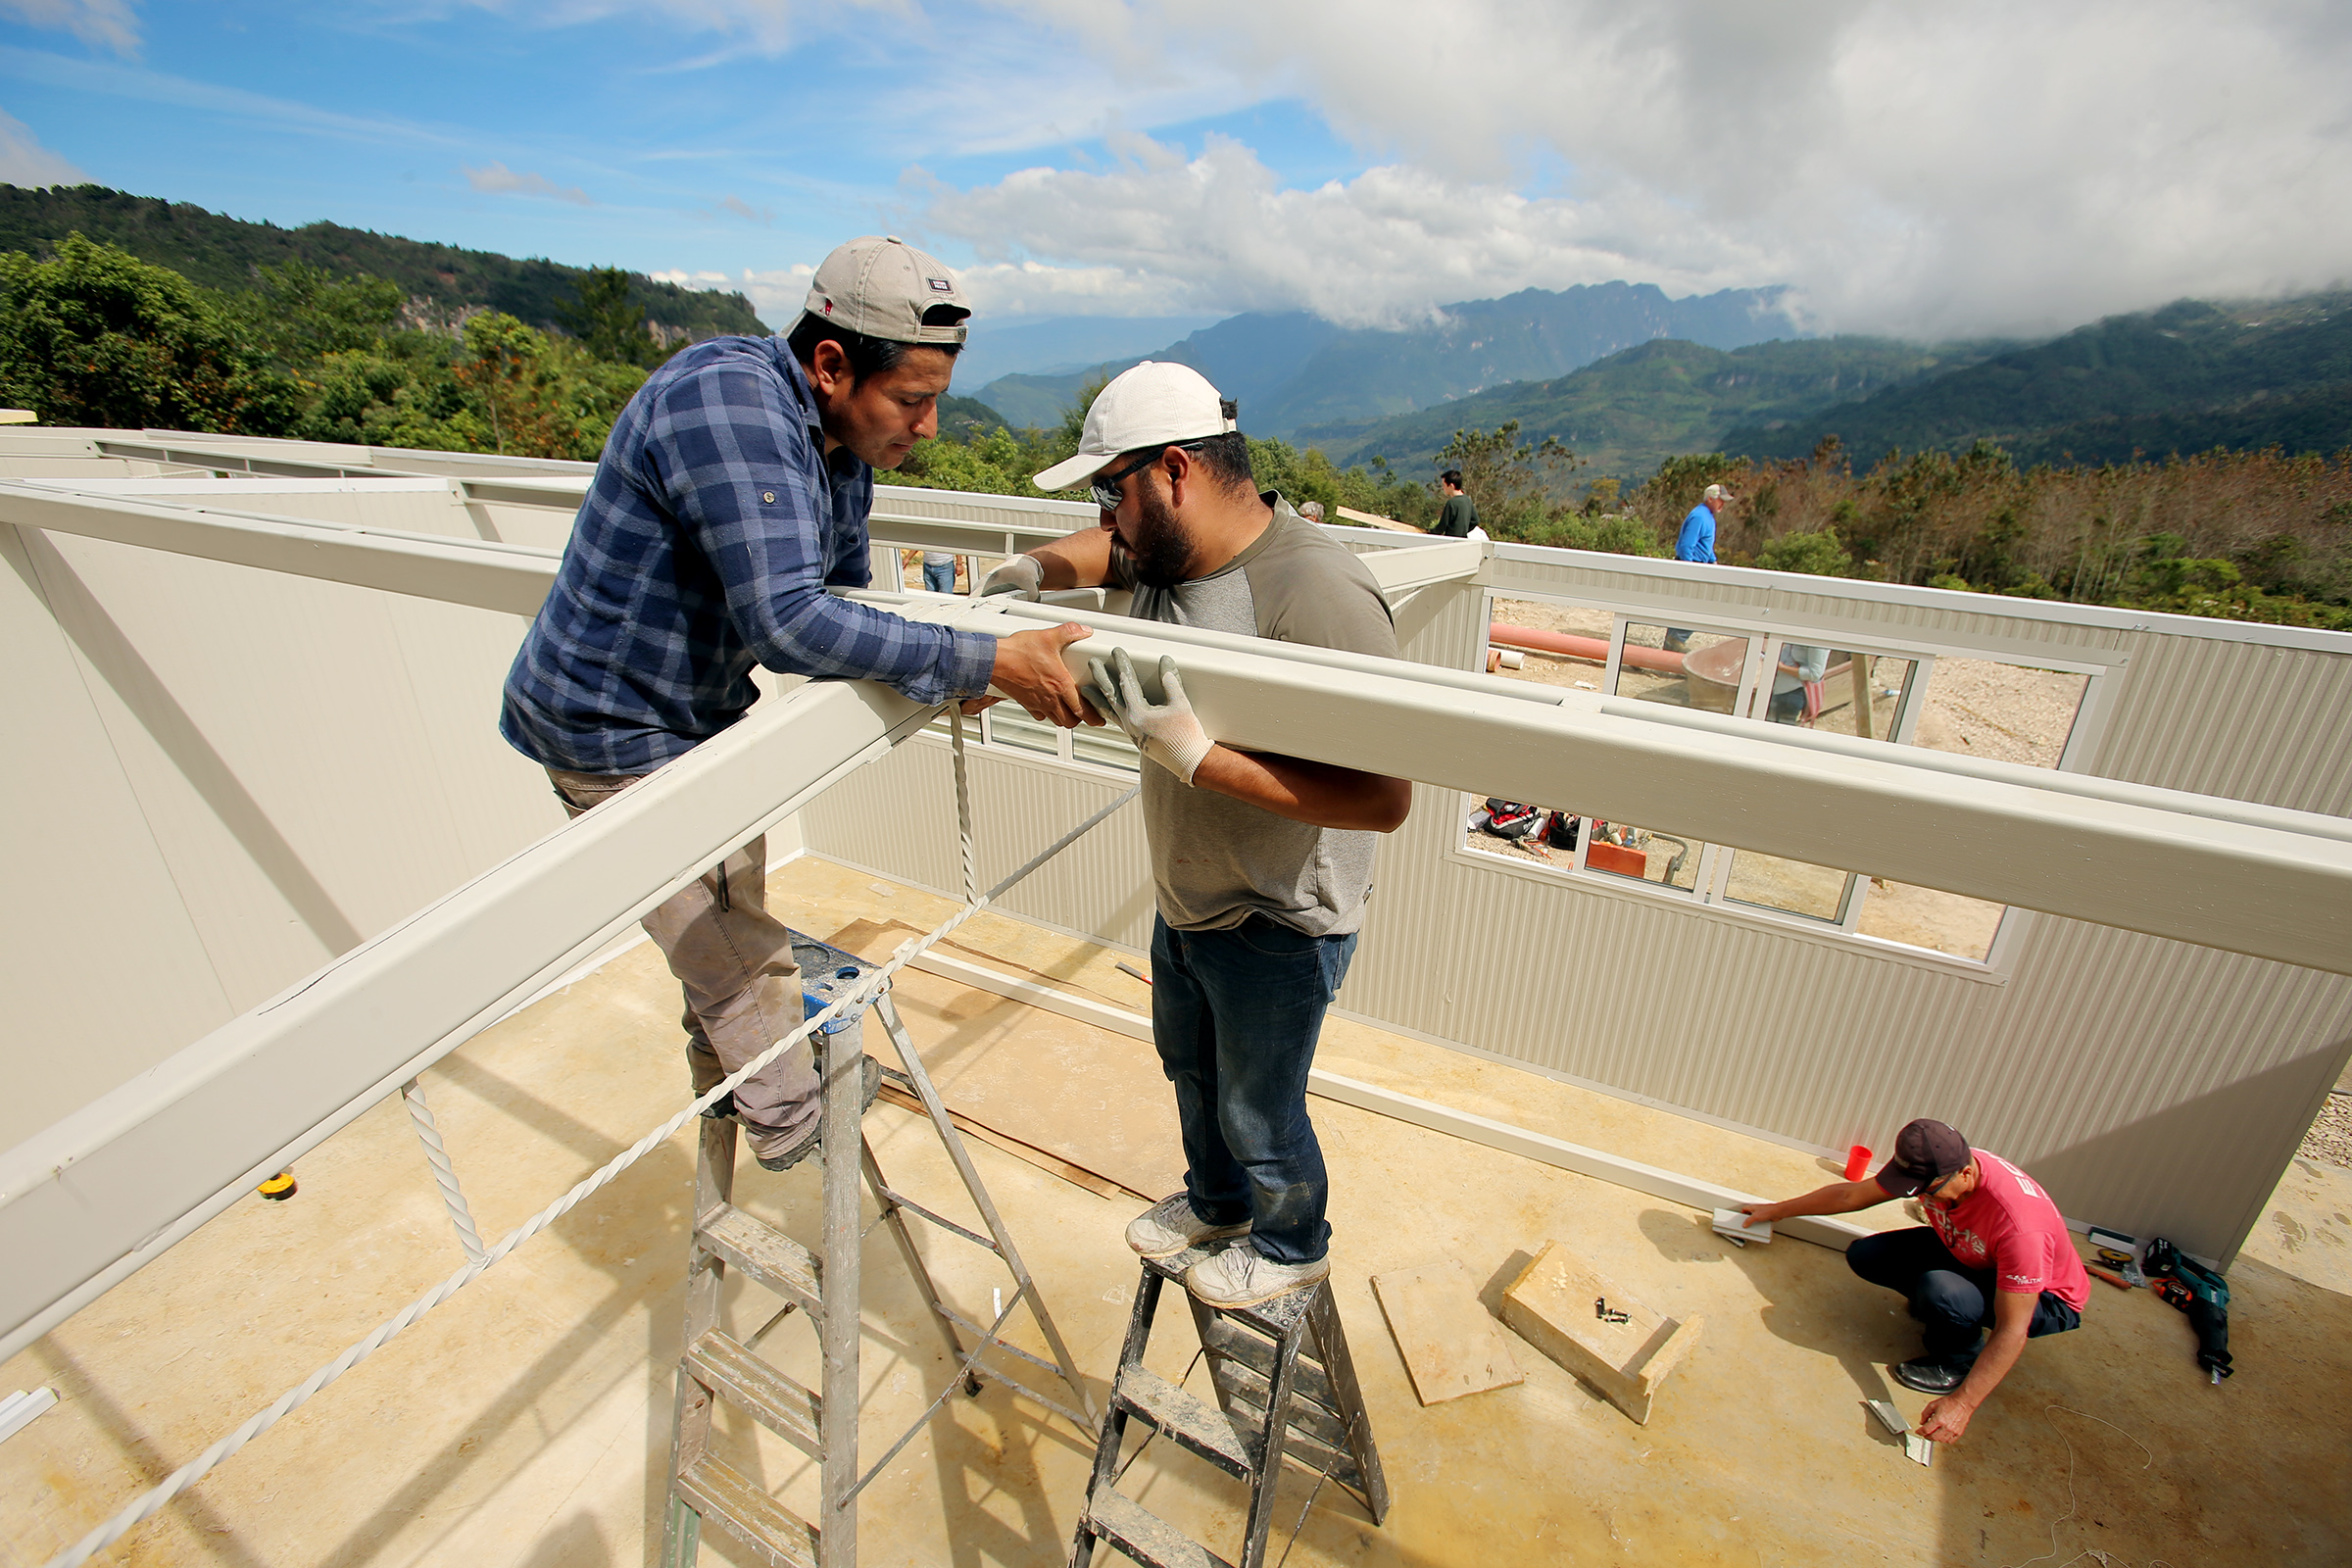 Contractors Alejandro Villar and Antony Villanueva attach roof trusses as they and other workers and volunteers construct a pair of classrooms for kids in San Andres Larrainzar, Mexico, on Friday, Nov. 29, 2019.